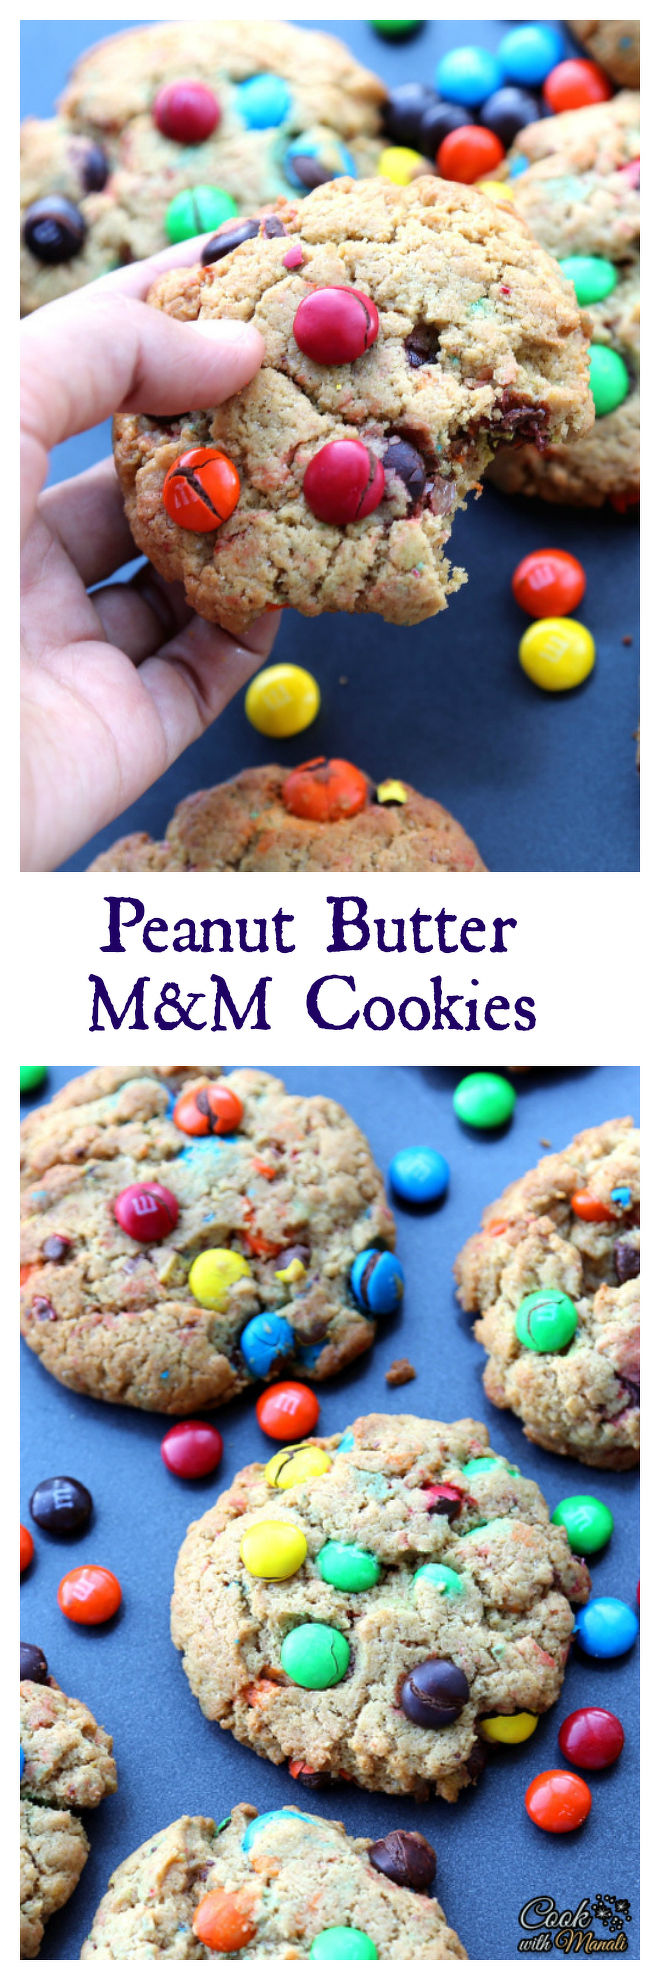 Peanut-Butter-MM-Cookies-Collage-nocwm